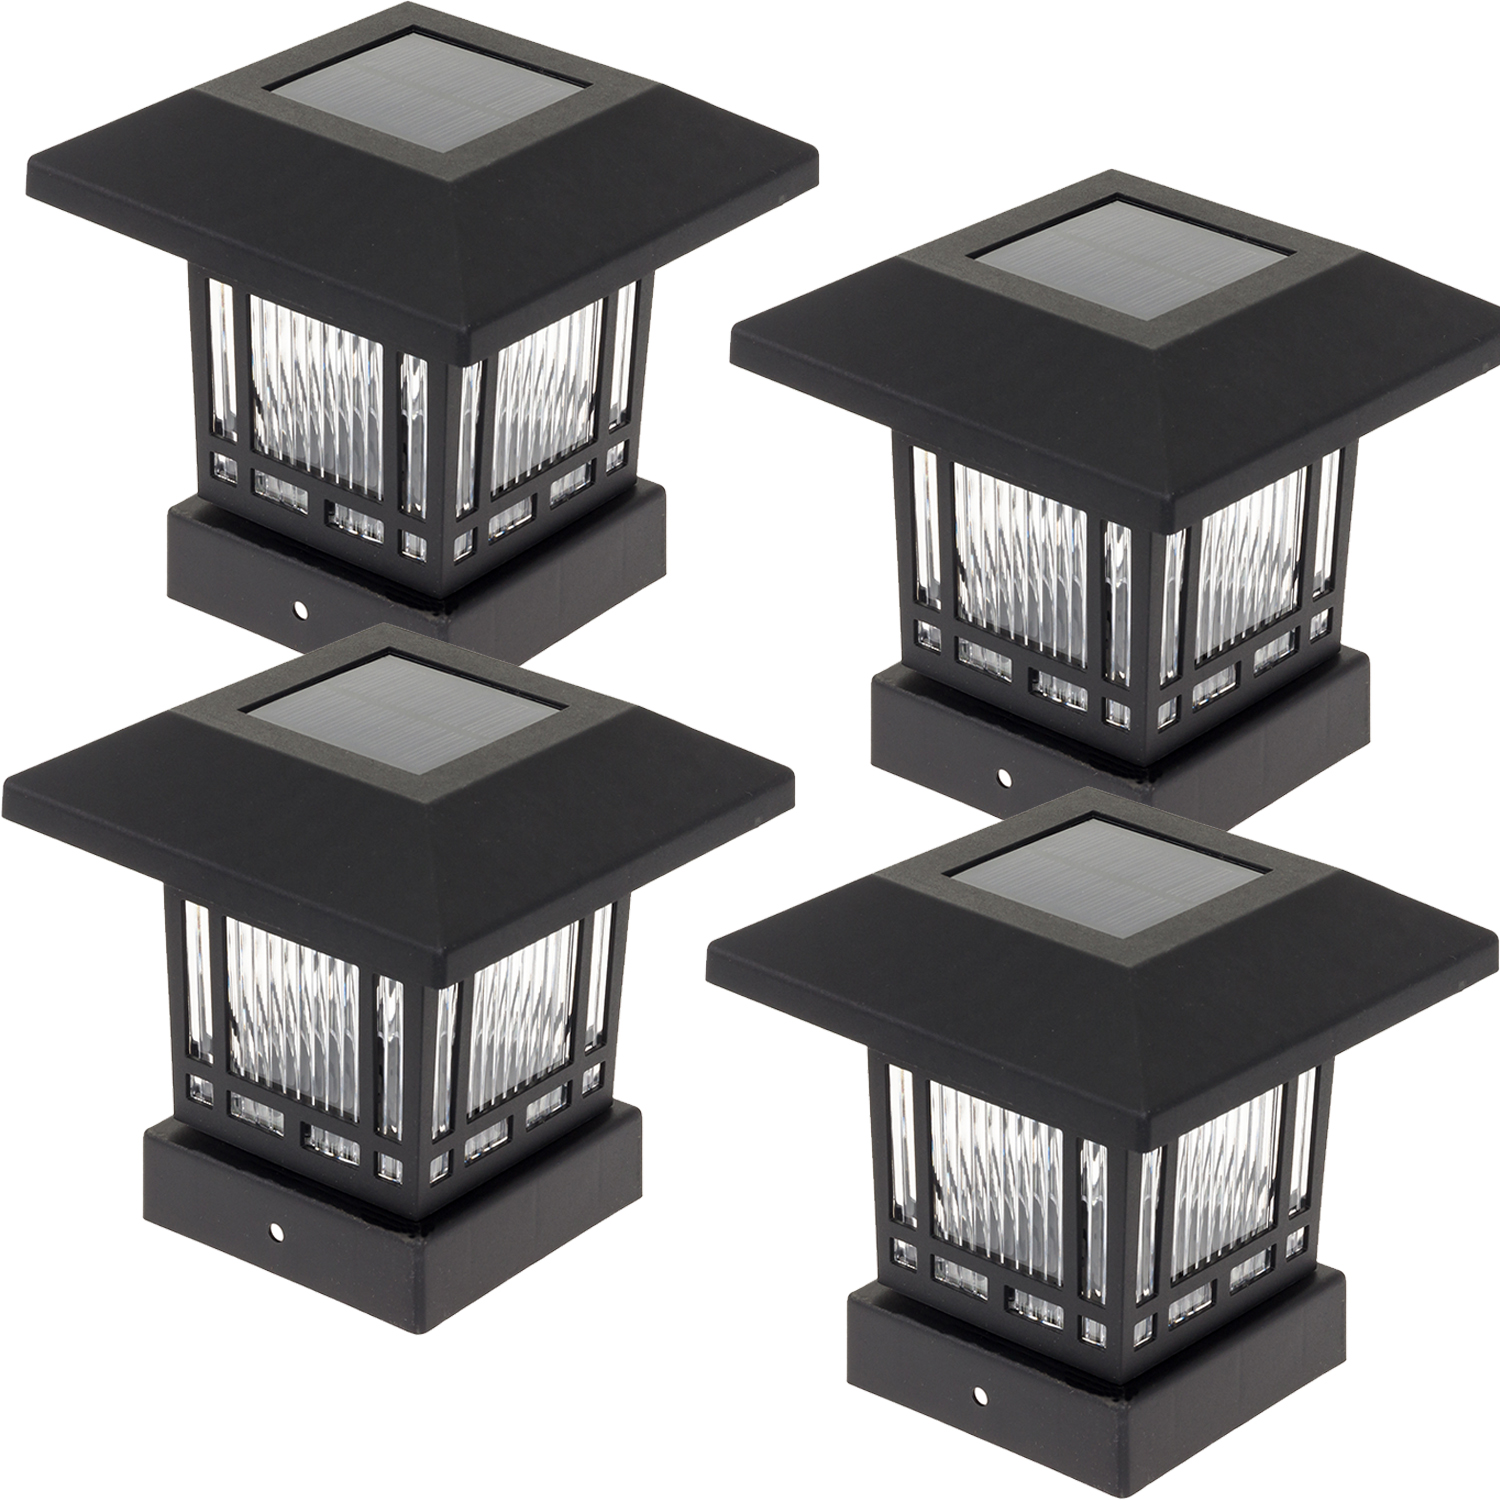 WESTINGHOUSE NEW Eaton Solar 4 x 4 Post Cap Light for Wood Posts